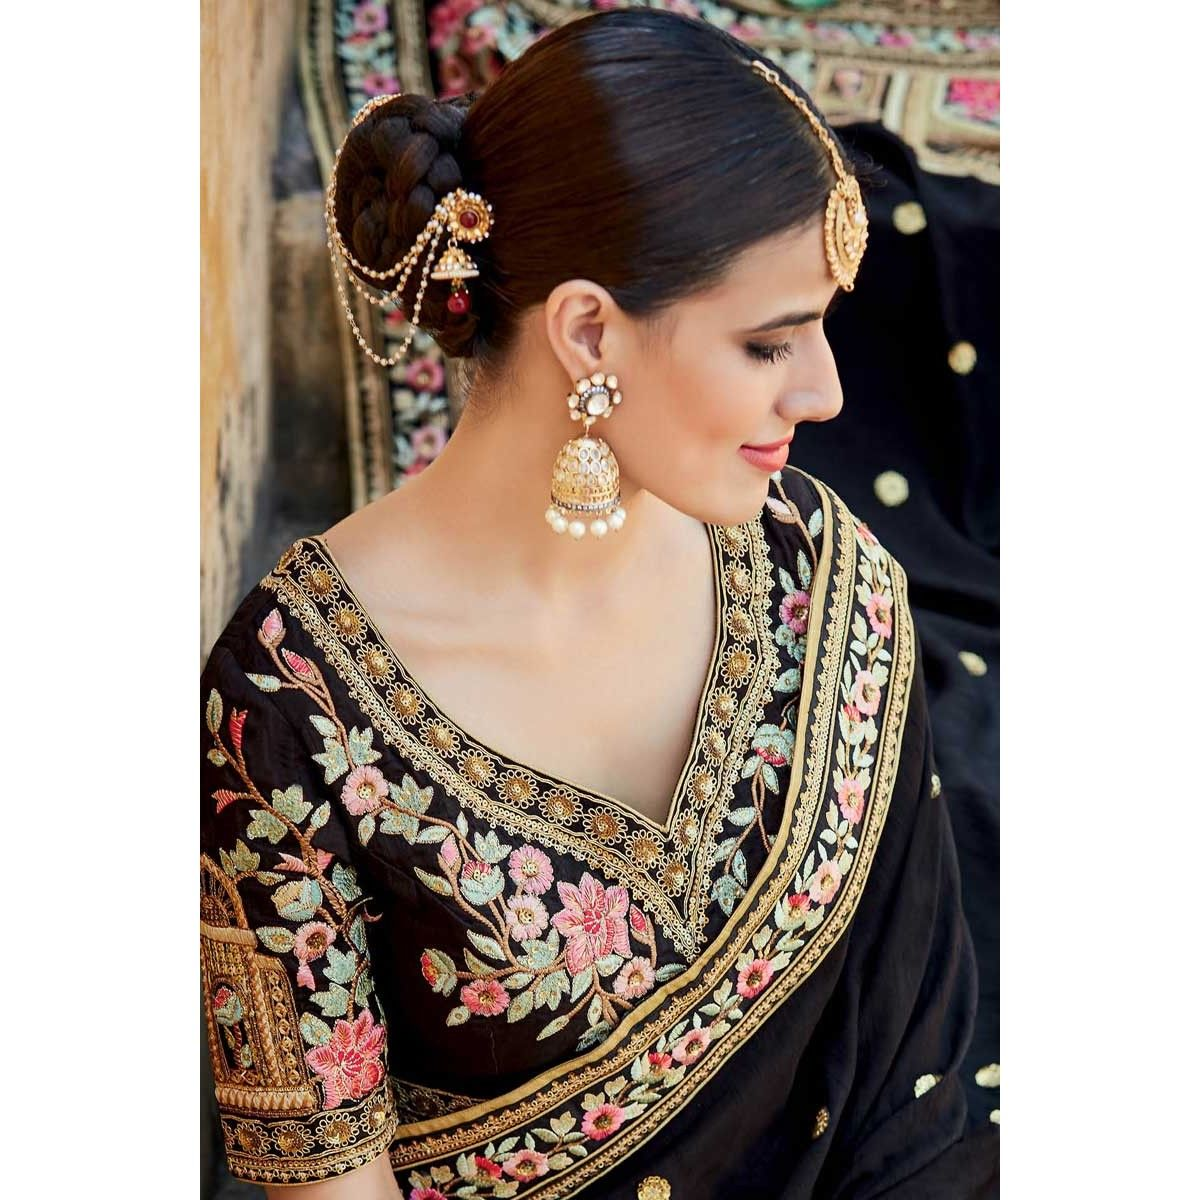 9a9812f1f0 Saree online collection, Black And Beige net asian festival sari, v neck  blouse now in shop. Andaaz Fashion brings latest designer ethnic wear  collection in ...